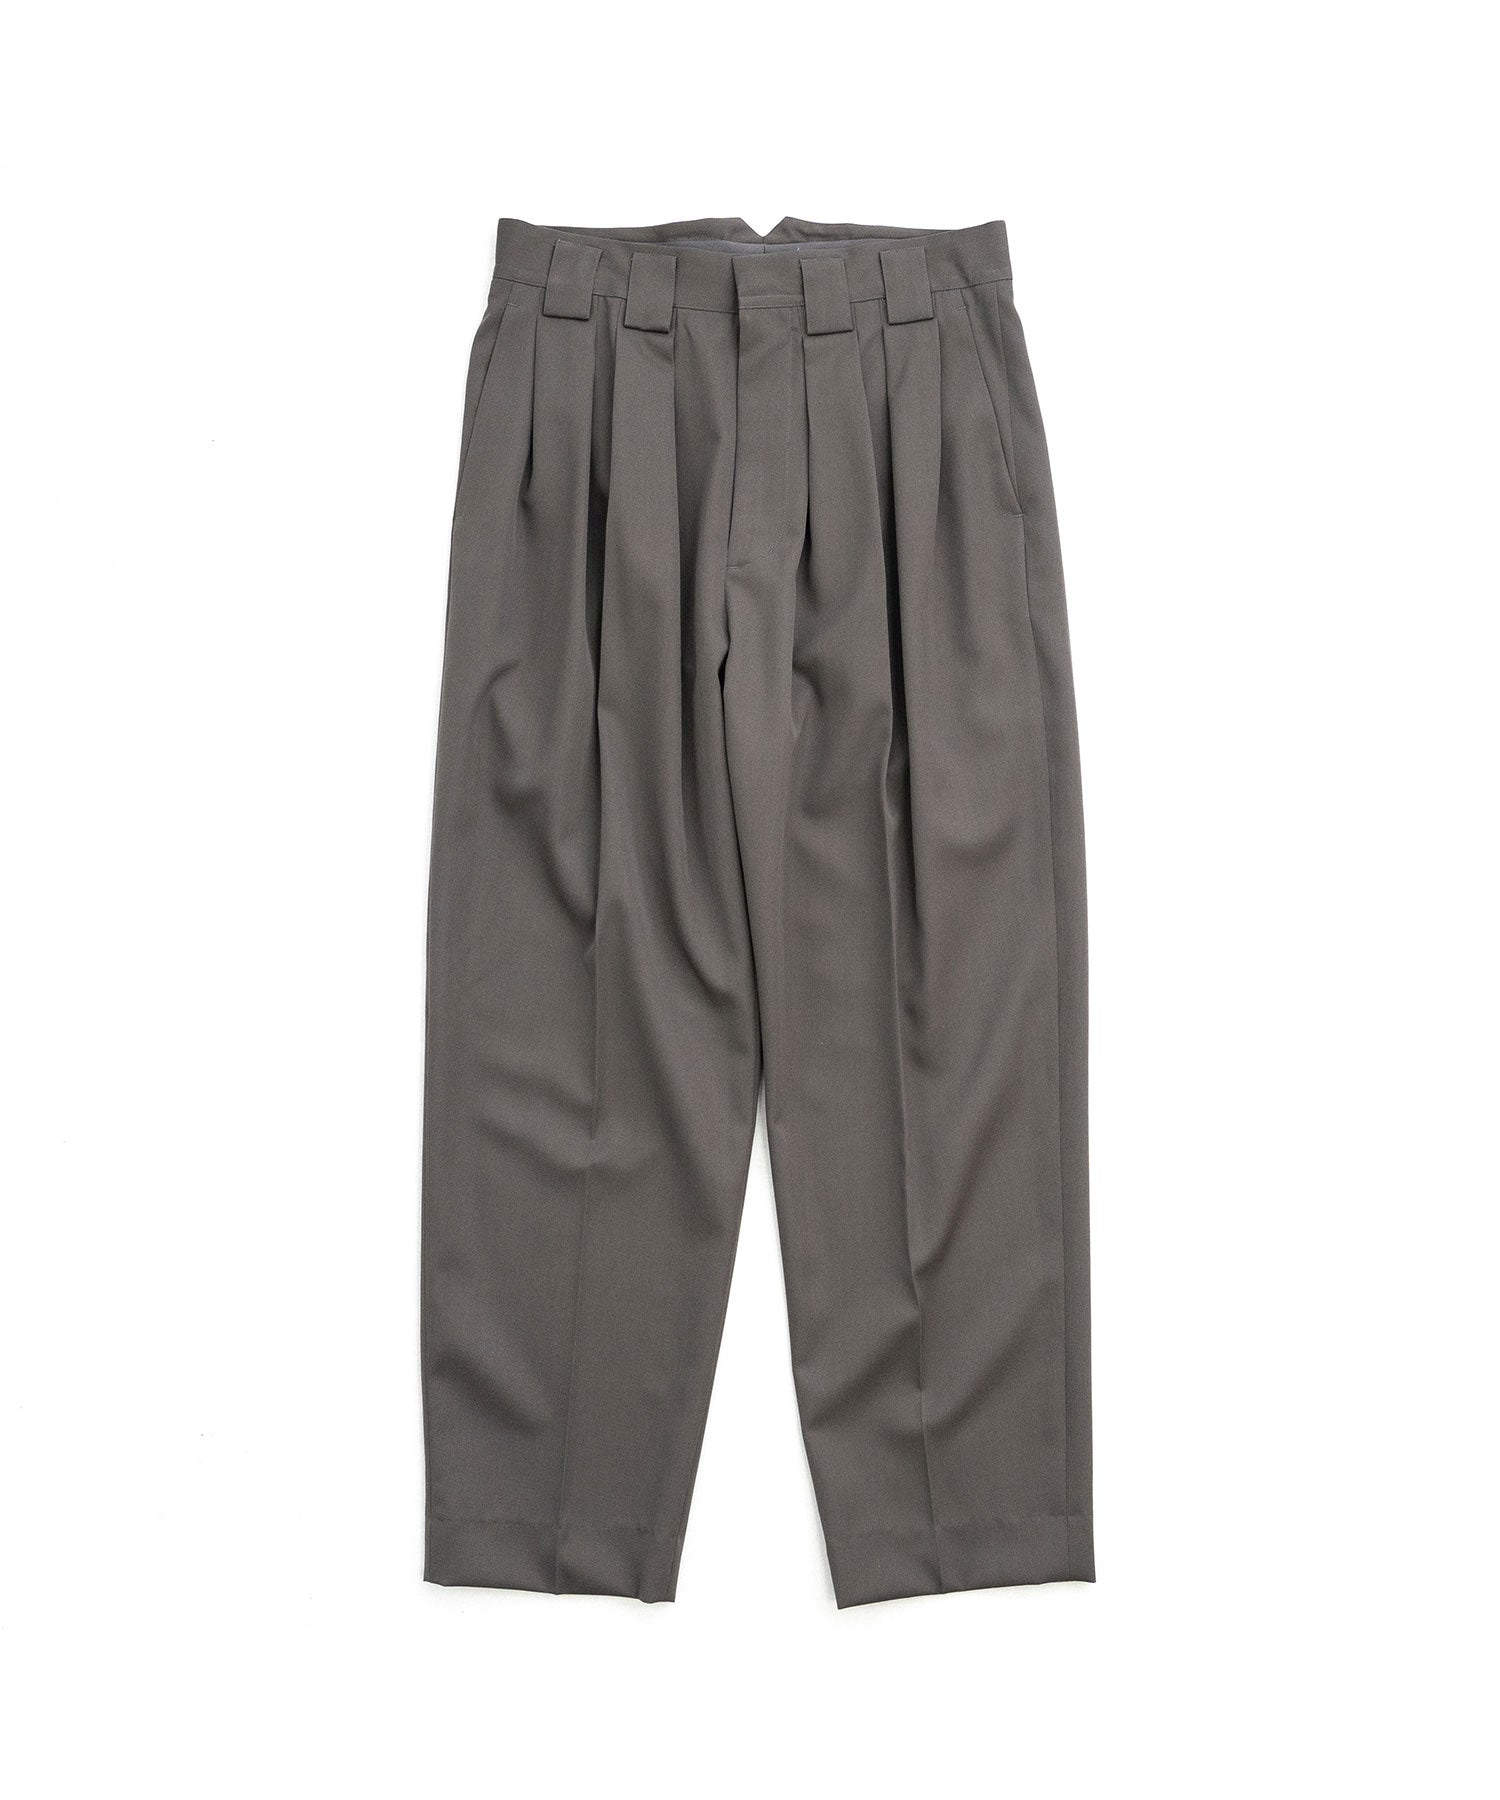 【stein】DOUBLE WIDE TROUSERS